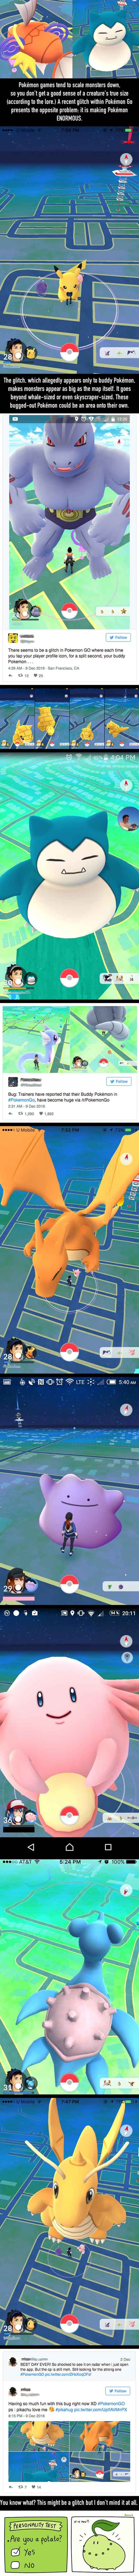 Pokemon GO bug turning buddies into giants